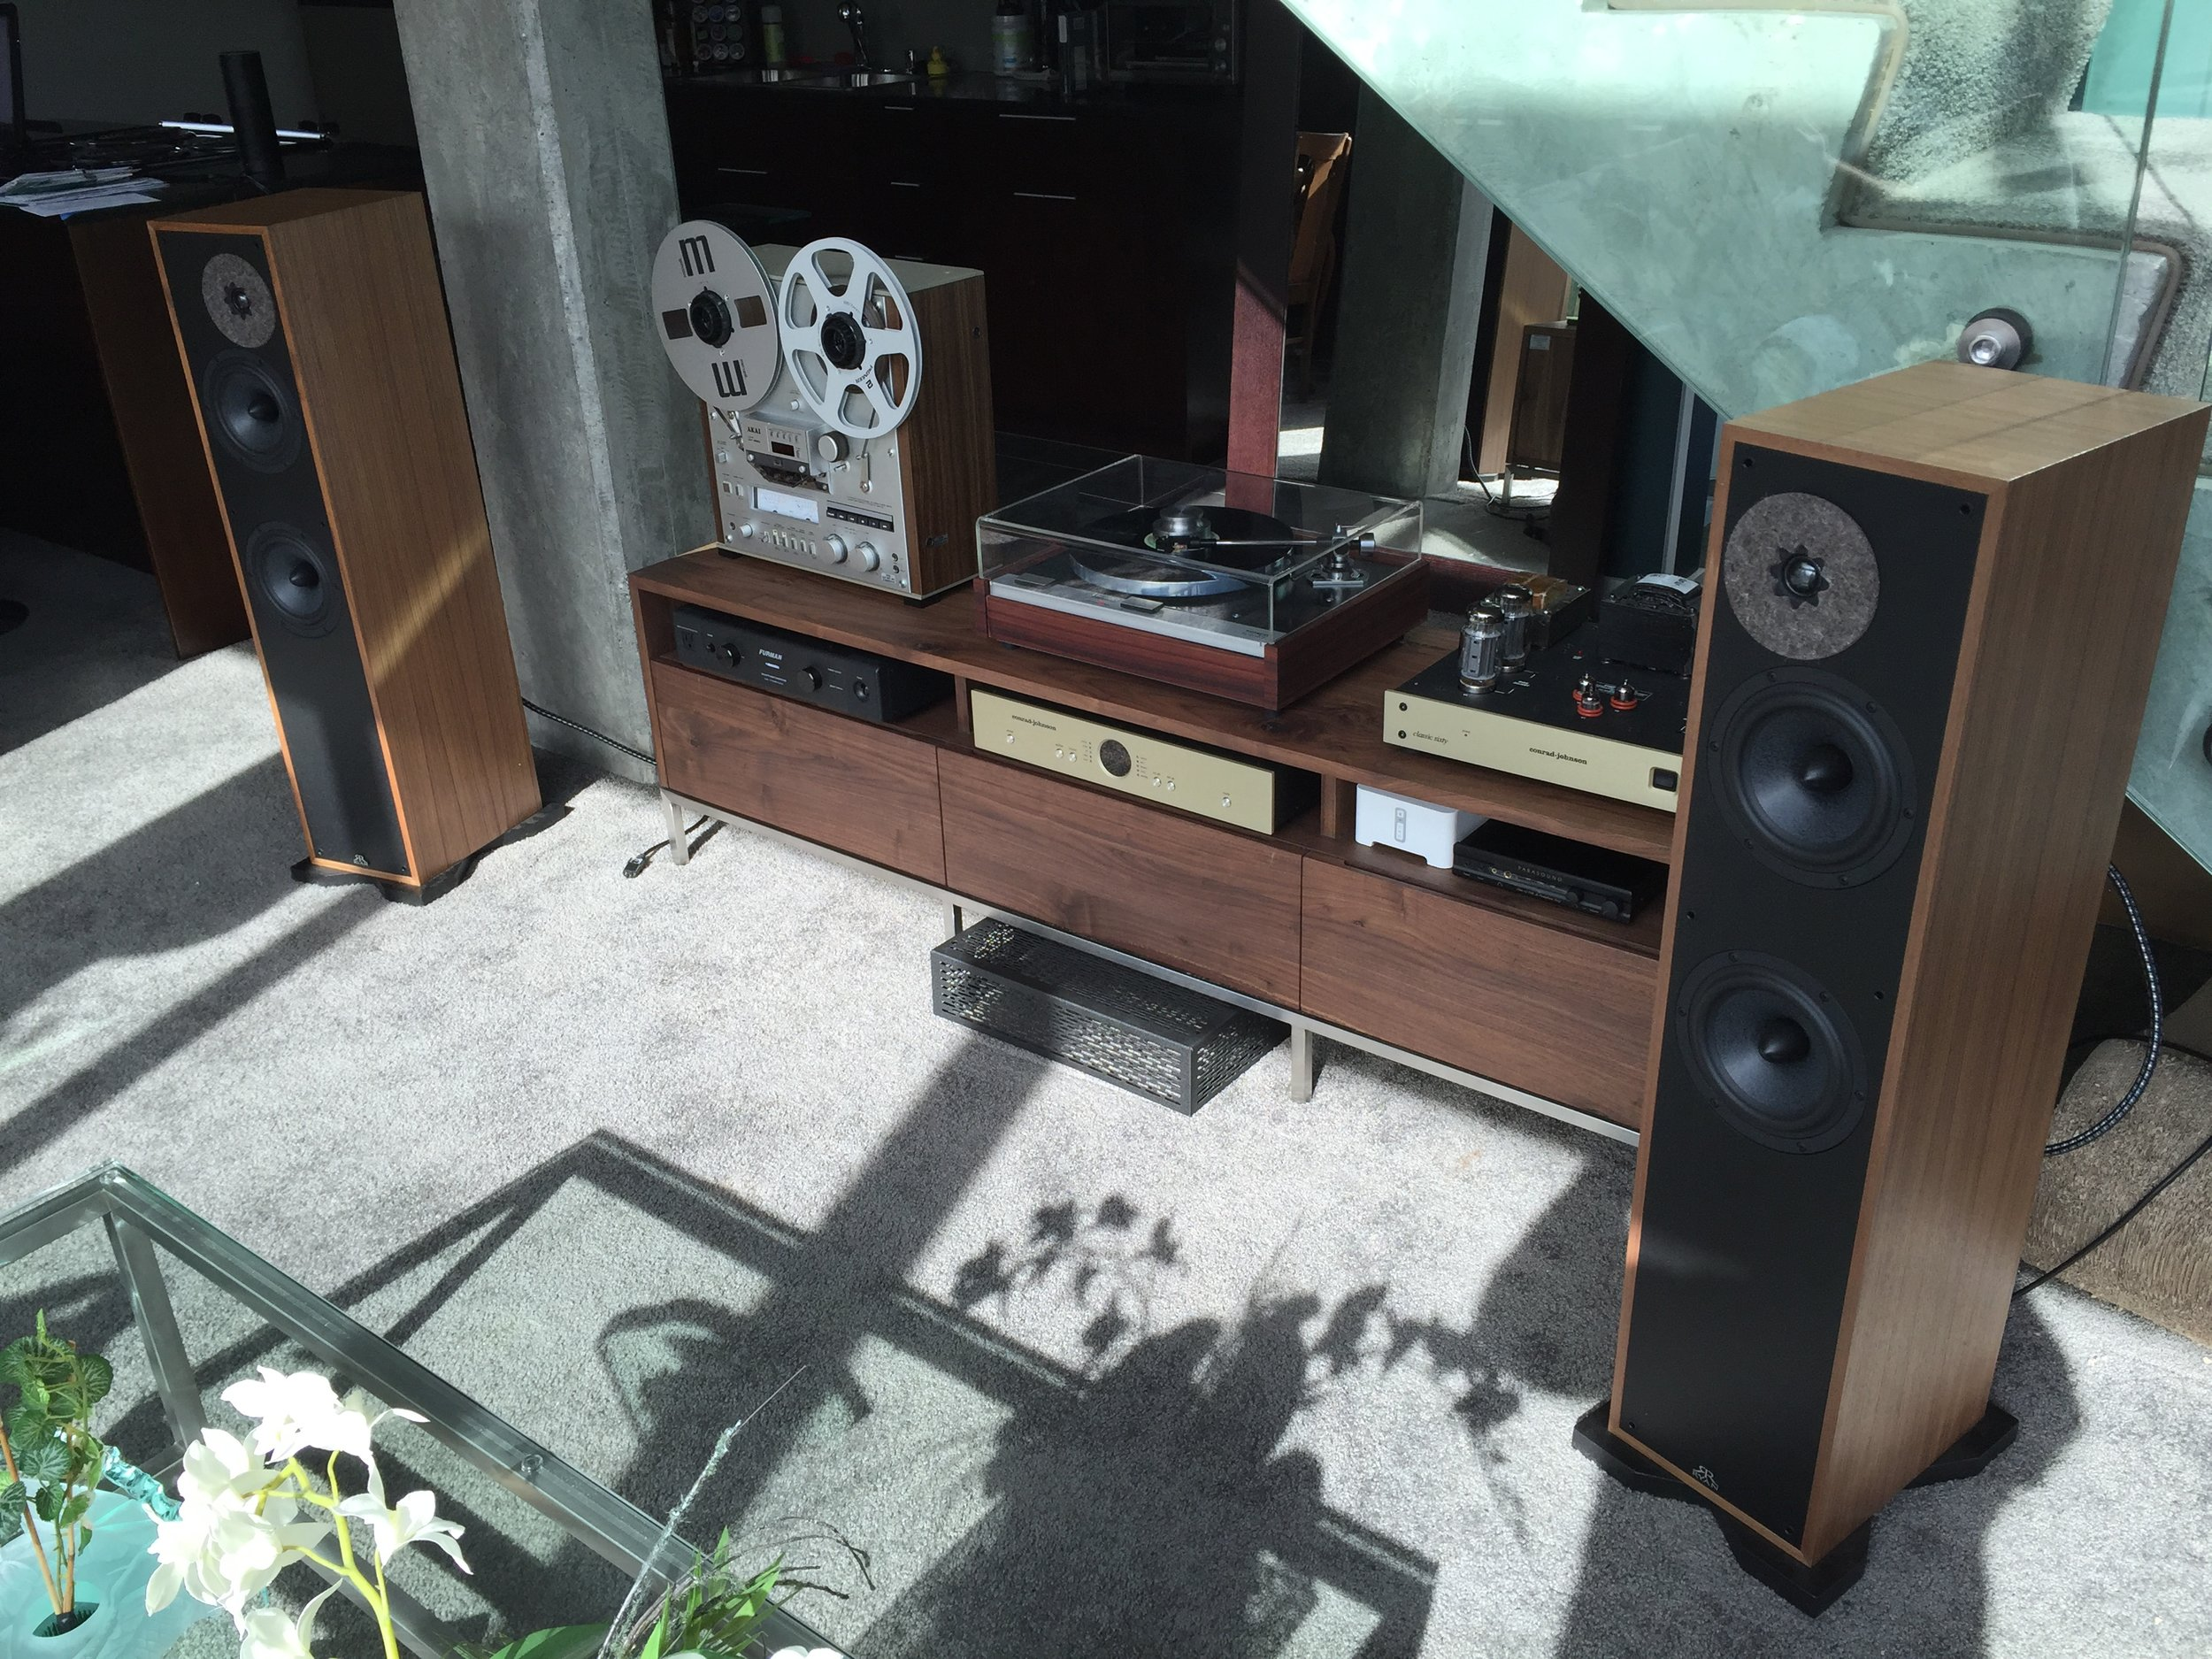 Robert System:  Ryan 620 floor standers, Thorens TT, CJ power amps, Akai GX 625 R2R.